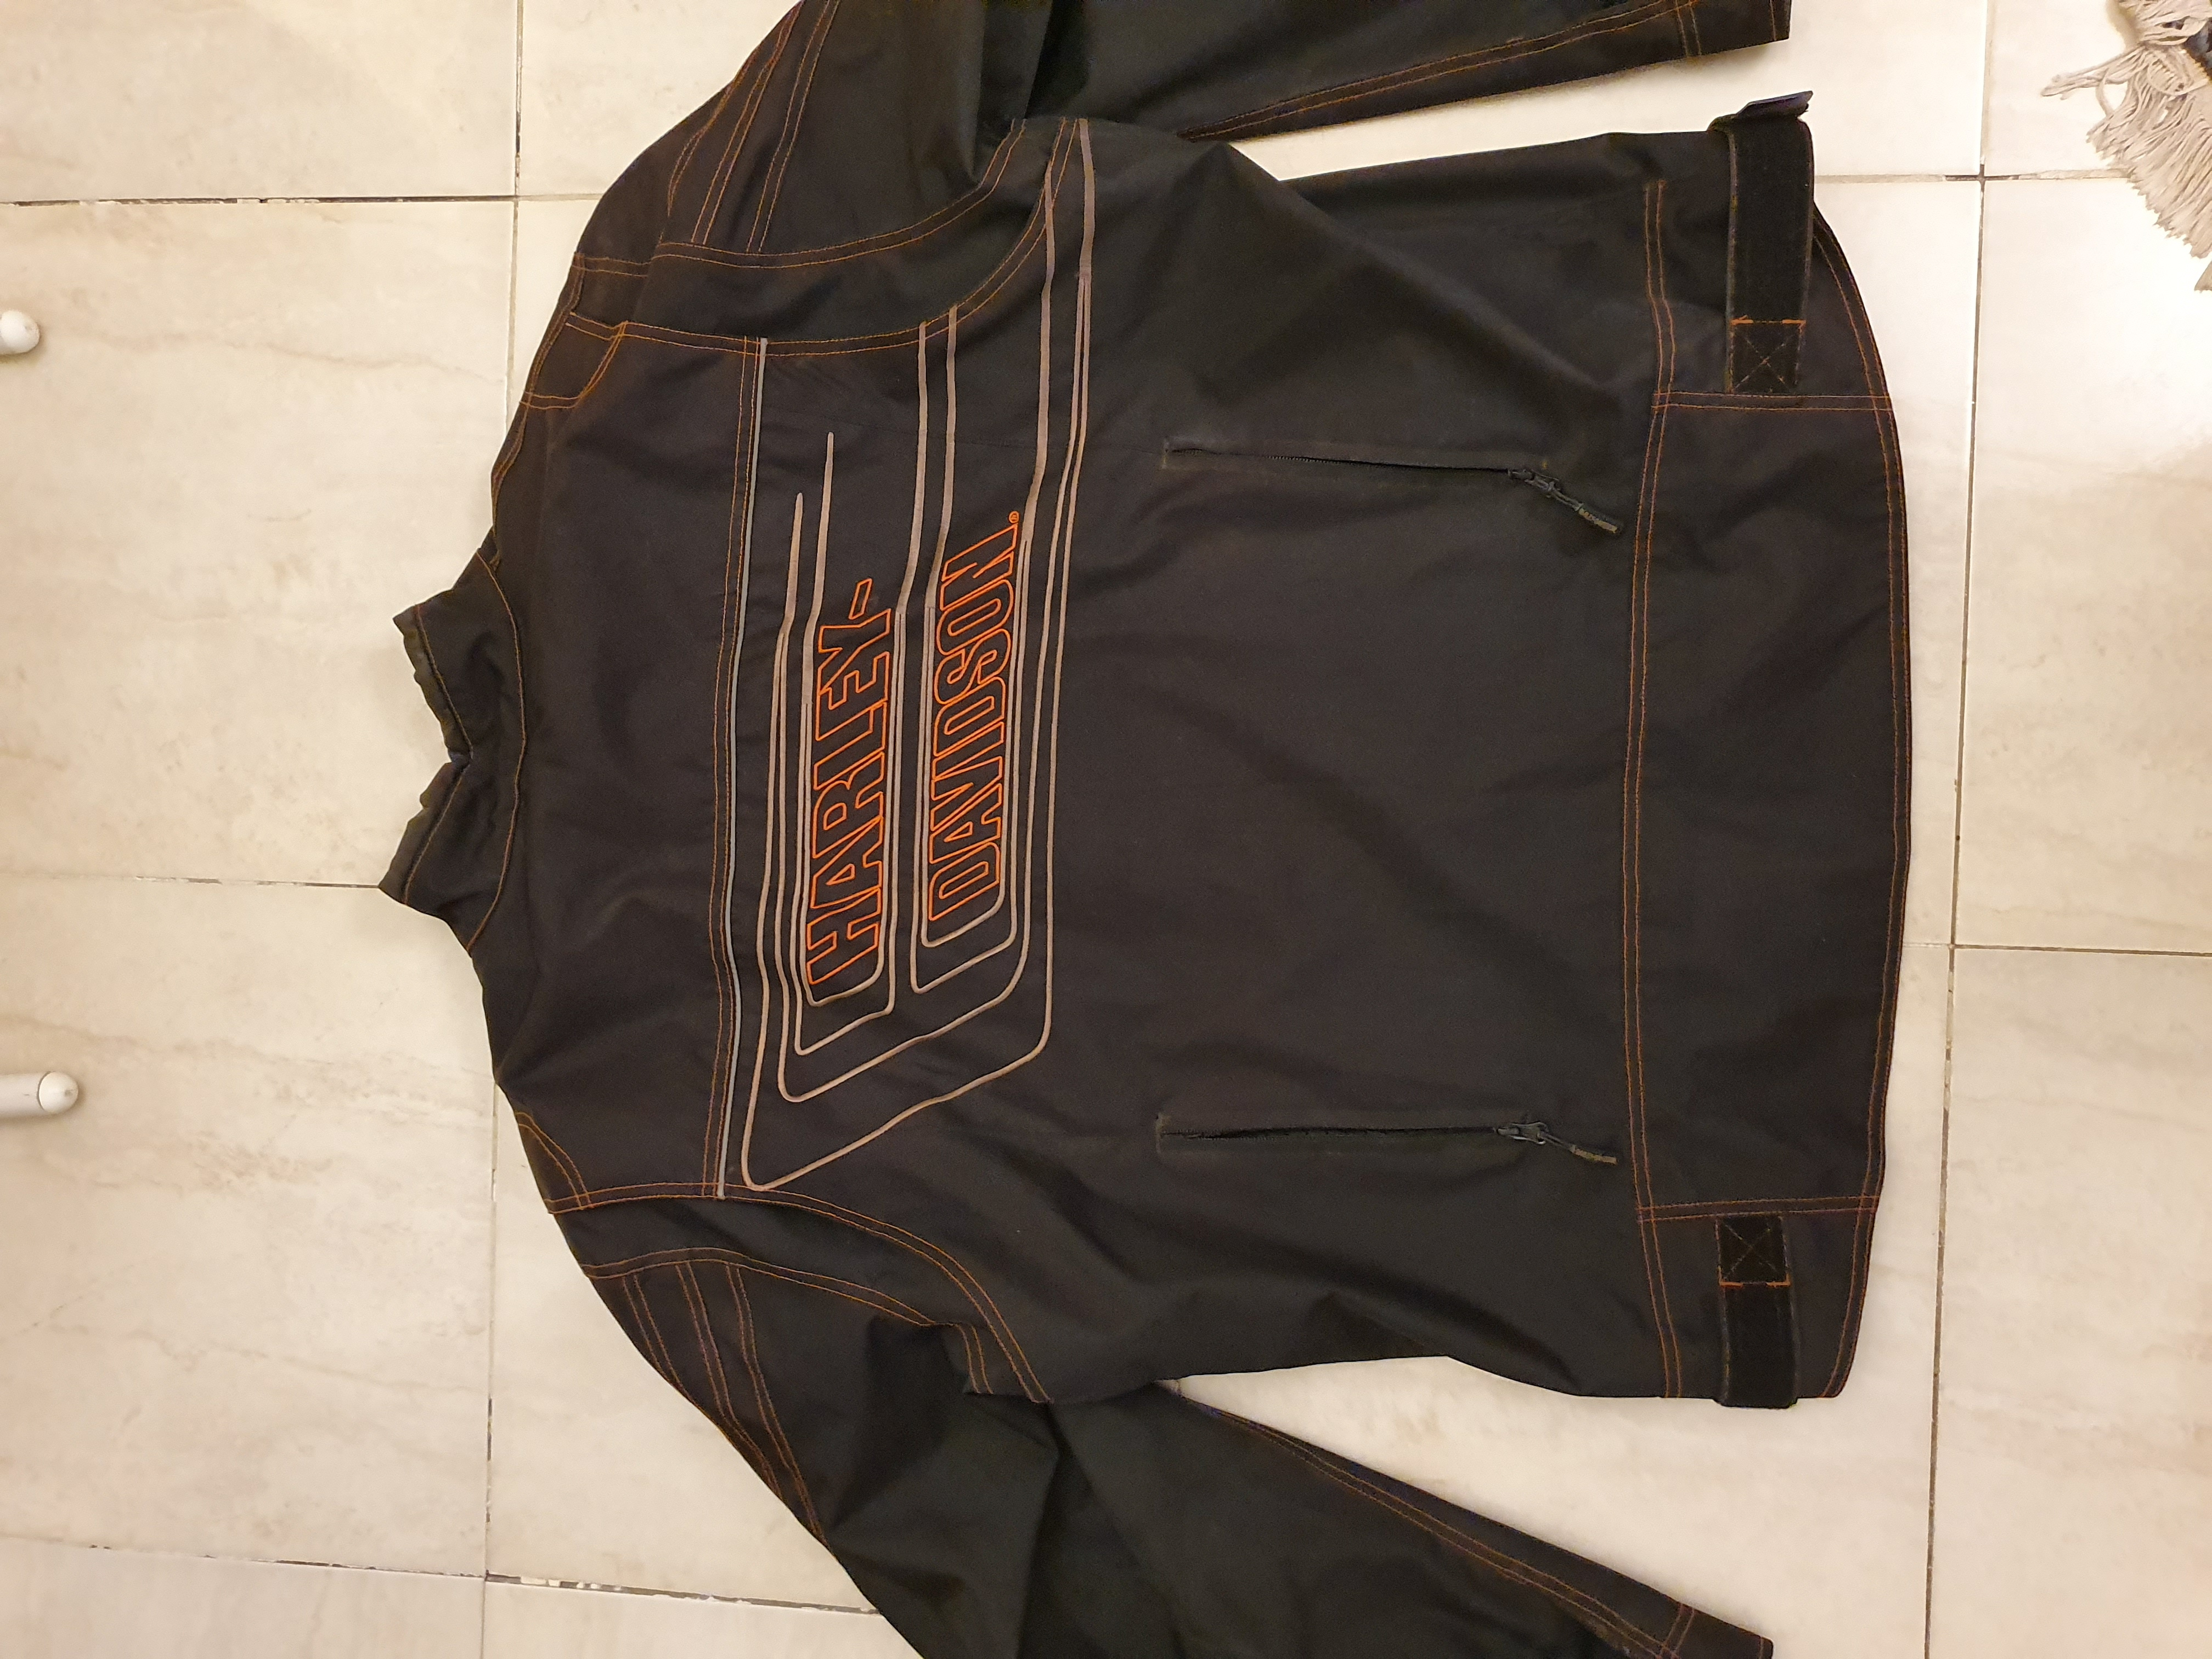 Harley Davidson -  Jacket - Harley davidson safety jacket